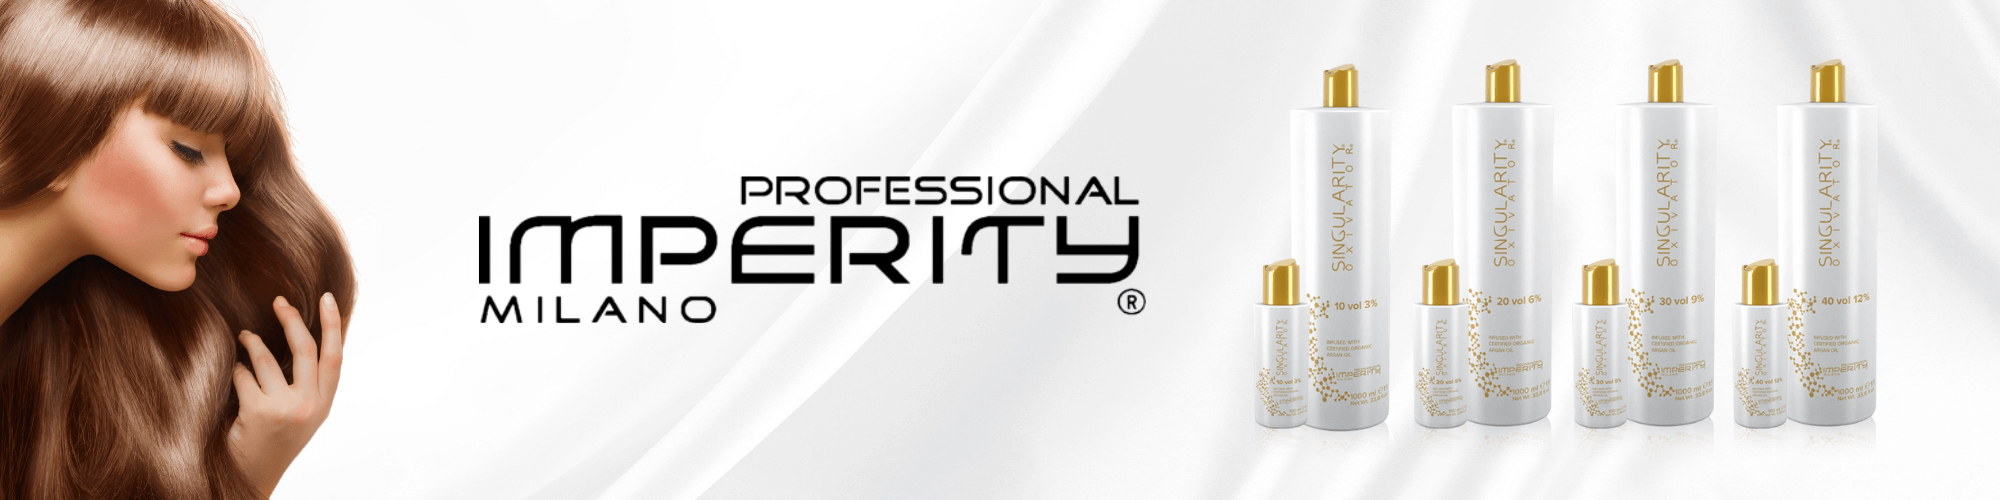 Imperity Professional Netherlands banner 1